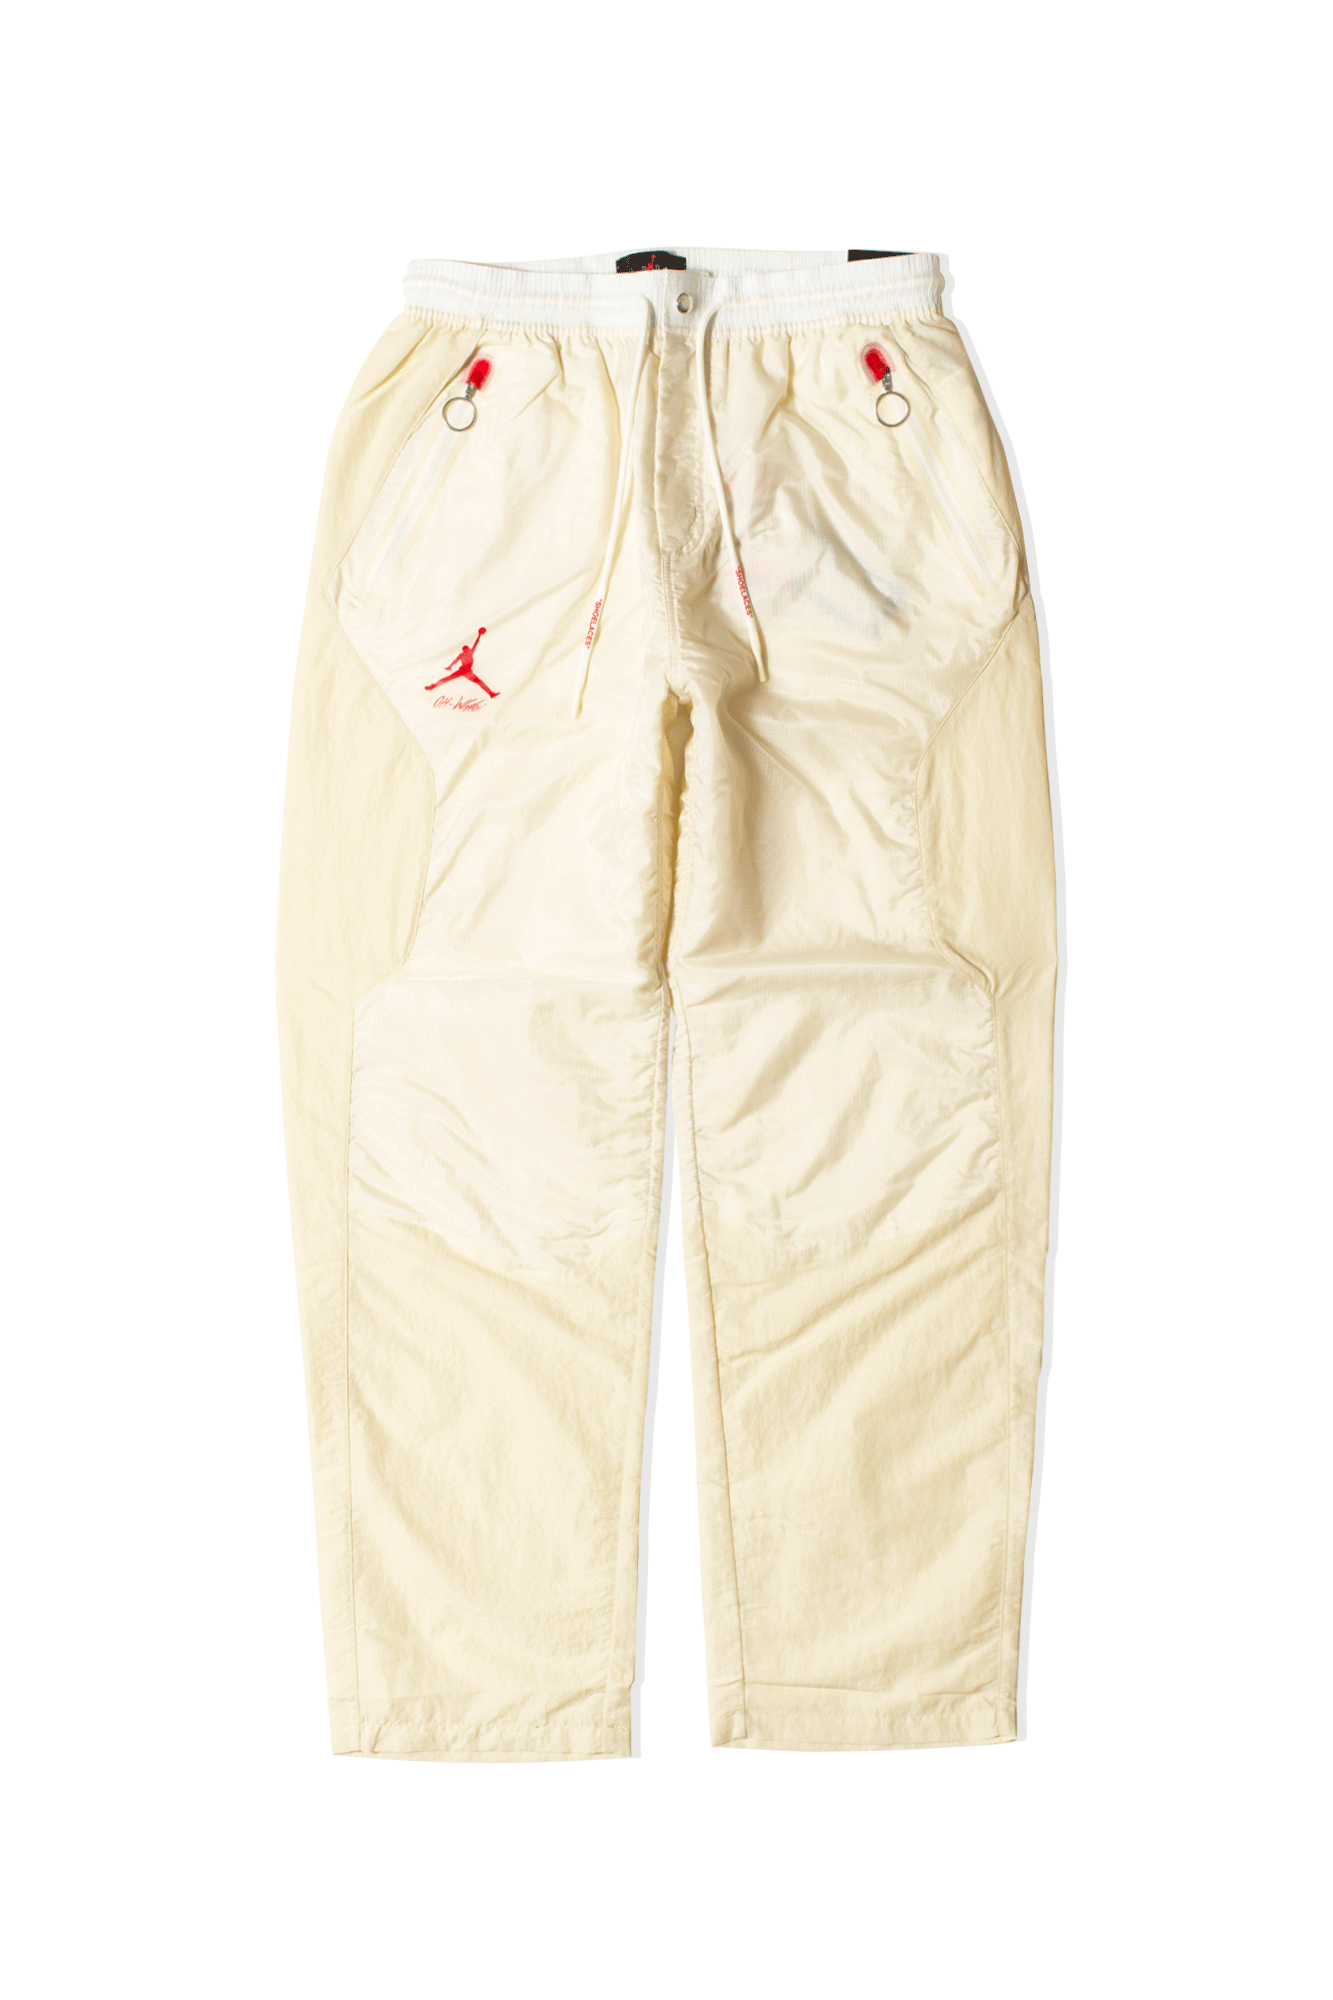 Jordan Brand Track pants Track Pant x Off White Beige DB4250-#000#233#S - One Block Down